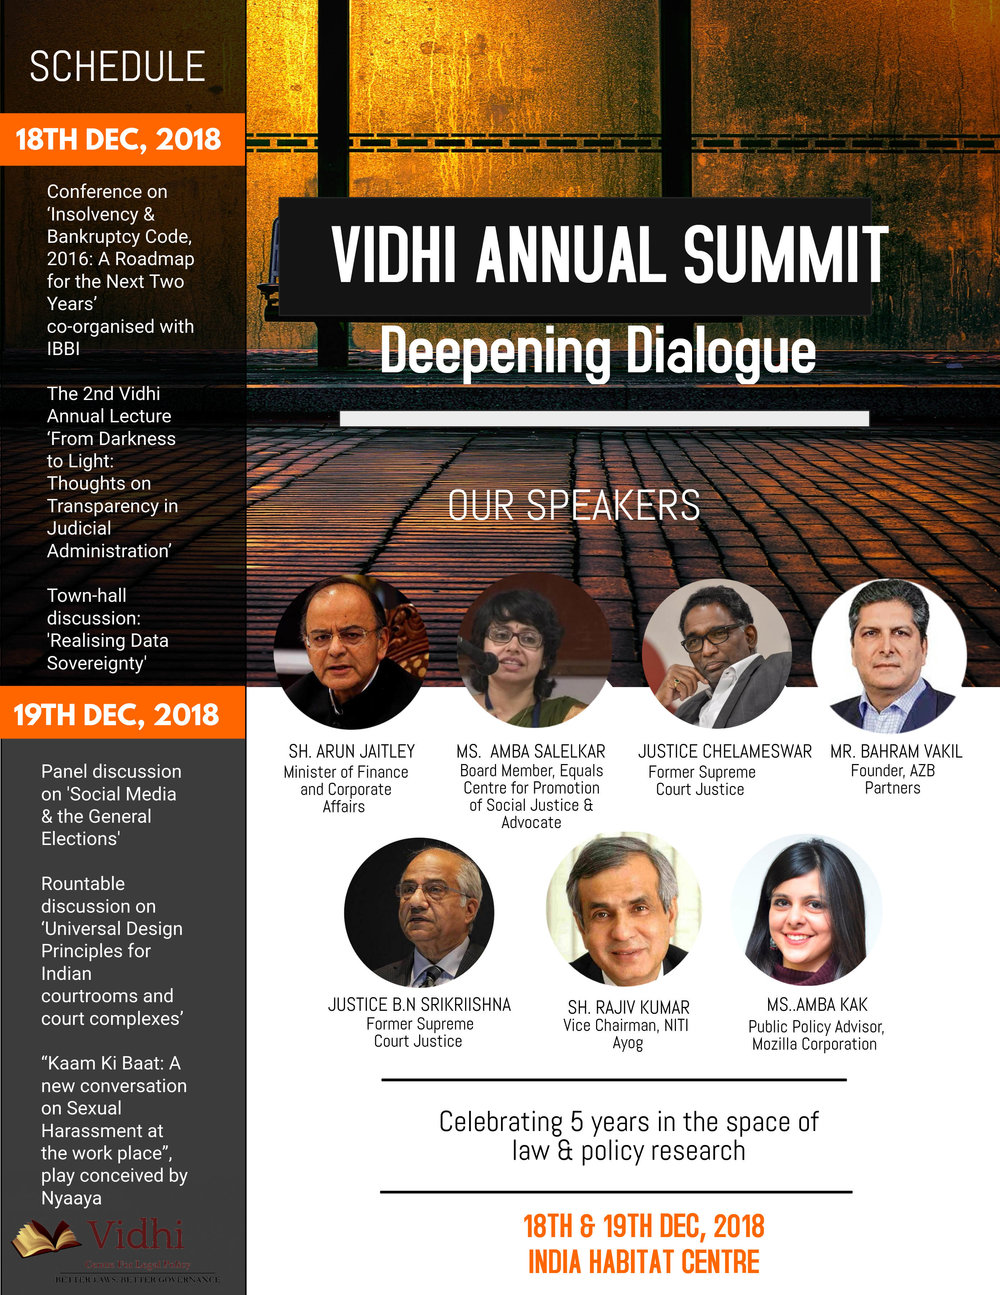 Vidhi Annual Summit: Deepening Dialogue 1